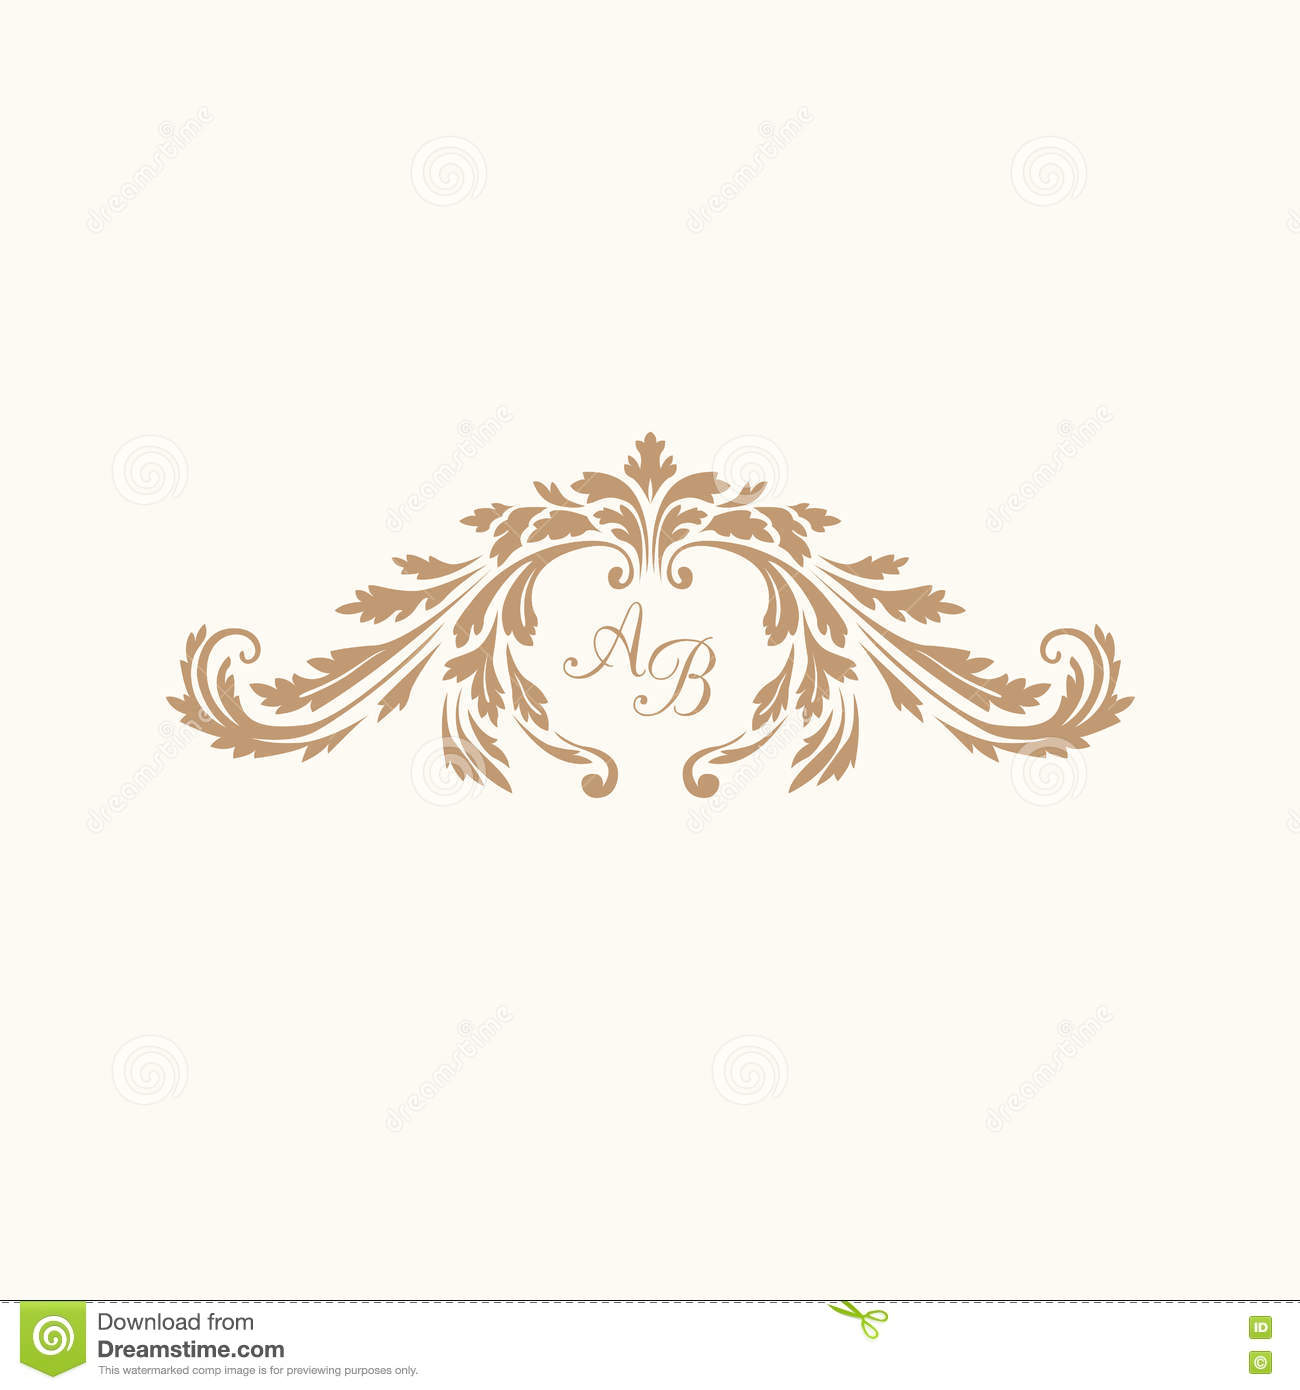 Vintage monogram template stock vector Illustration of heraldry